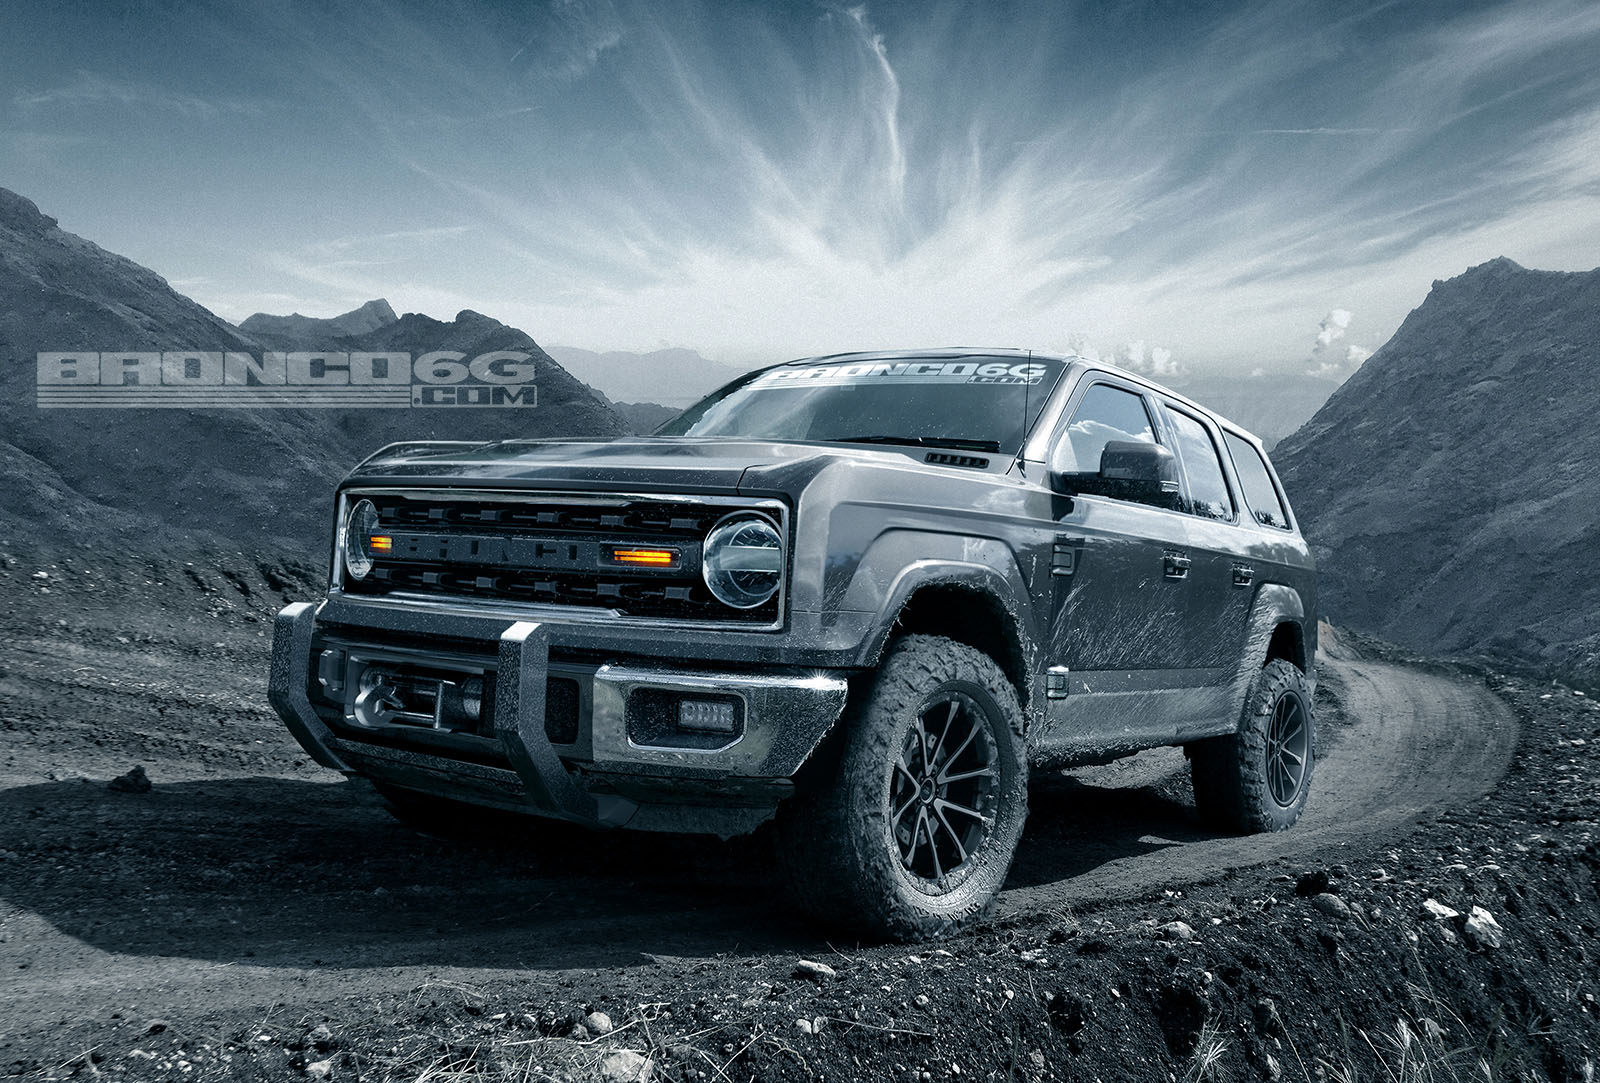 2020 2021 Ford Bronco Four Door Concept Rendering 2020